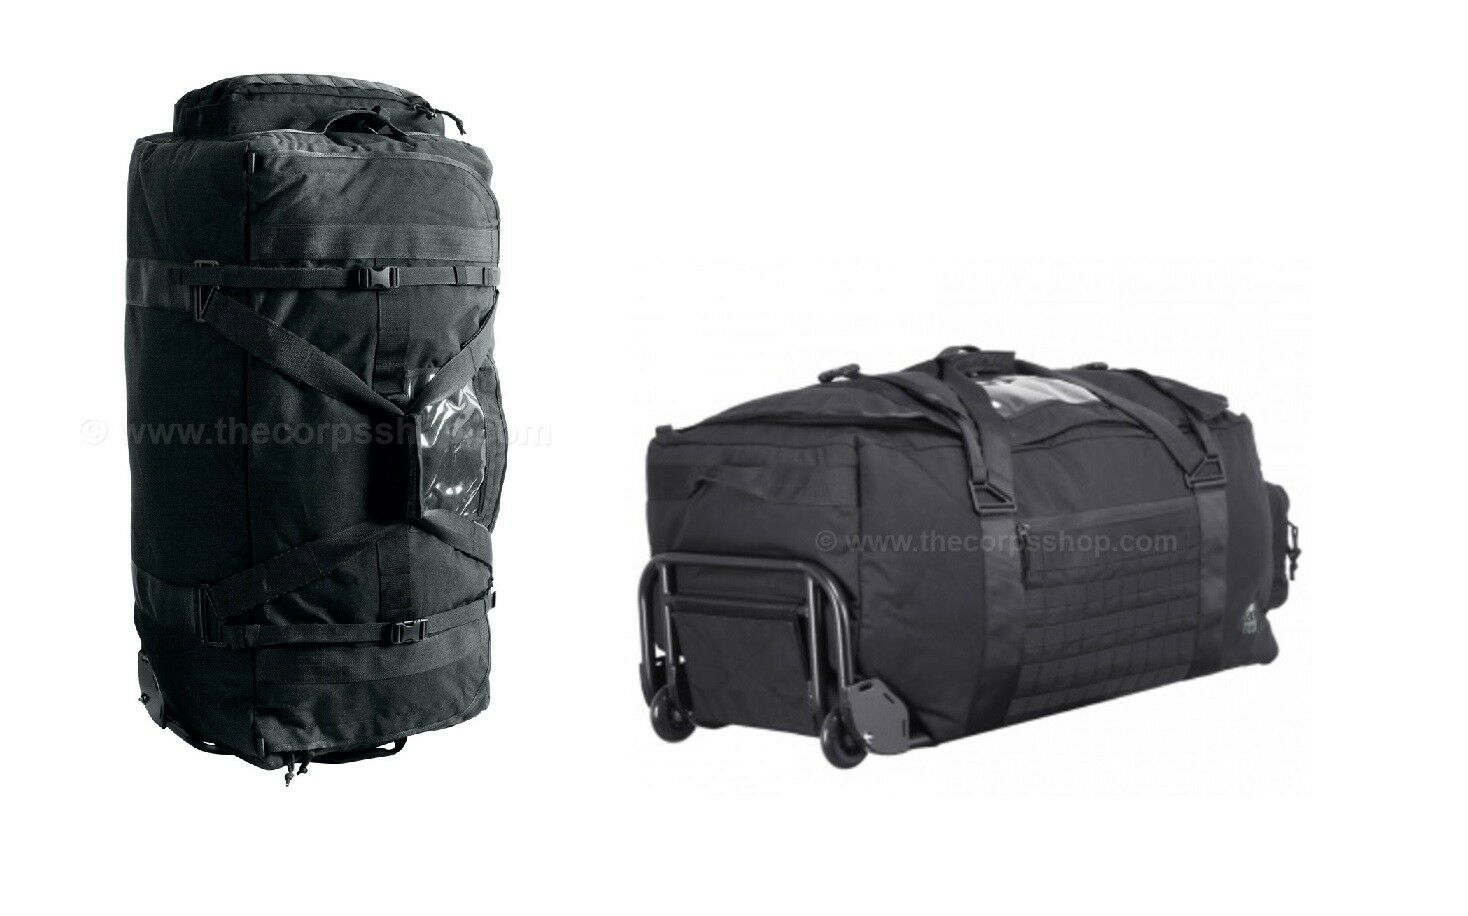 TASMANIAN TIGER TRANSPORTER BAG - HEAVY FRAME DUFFLE WITH WHEELS 700D CORDURA